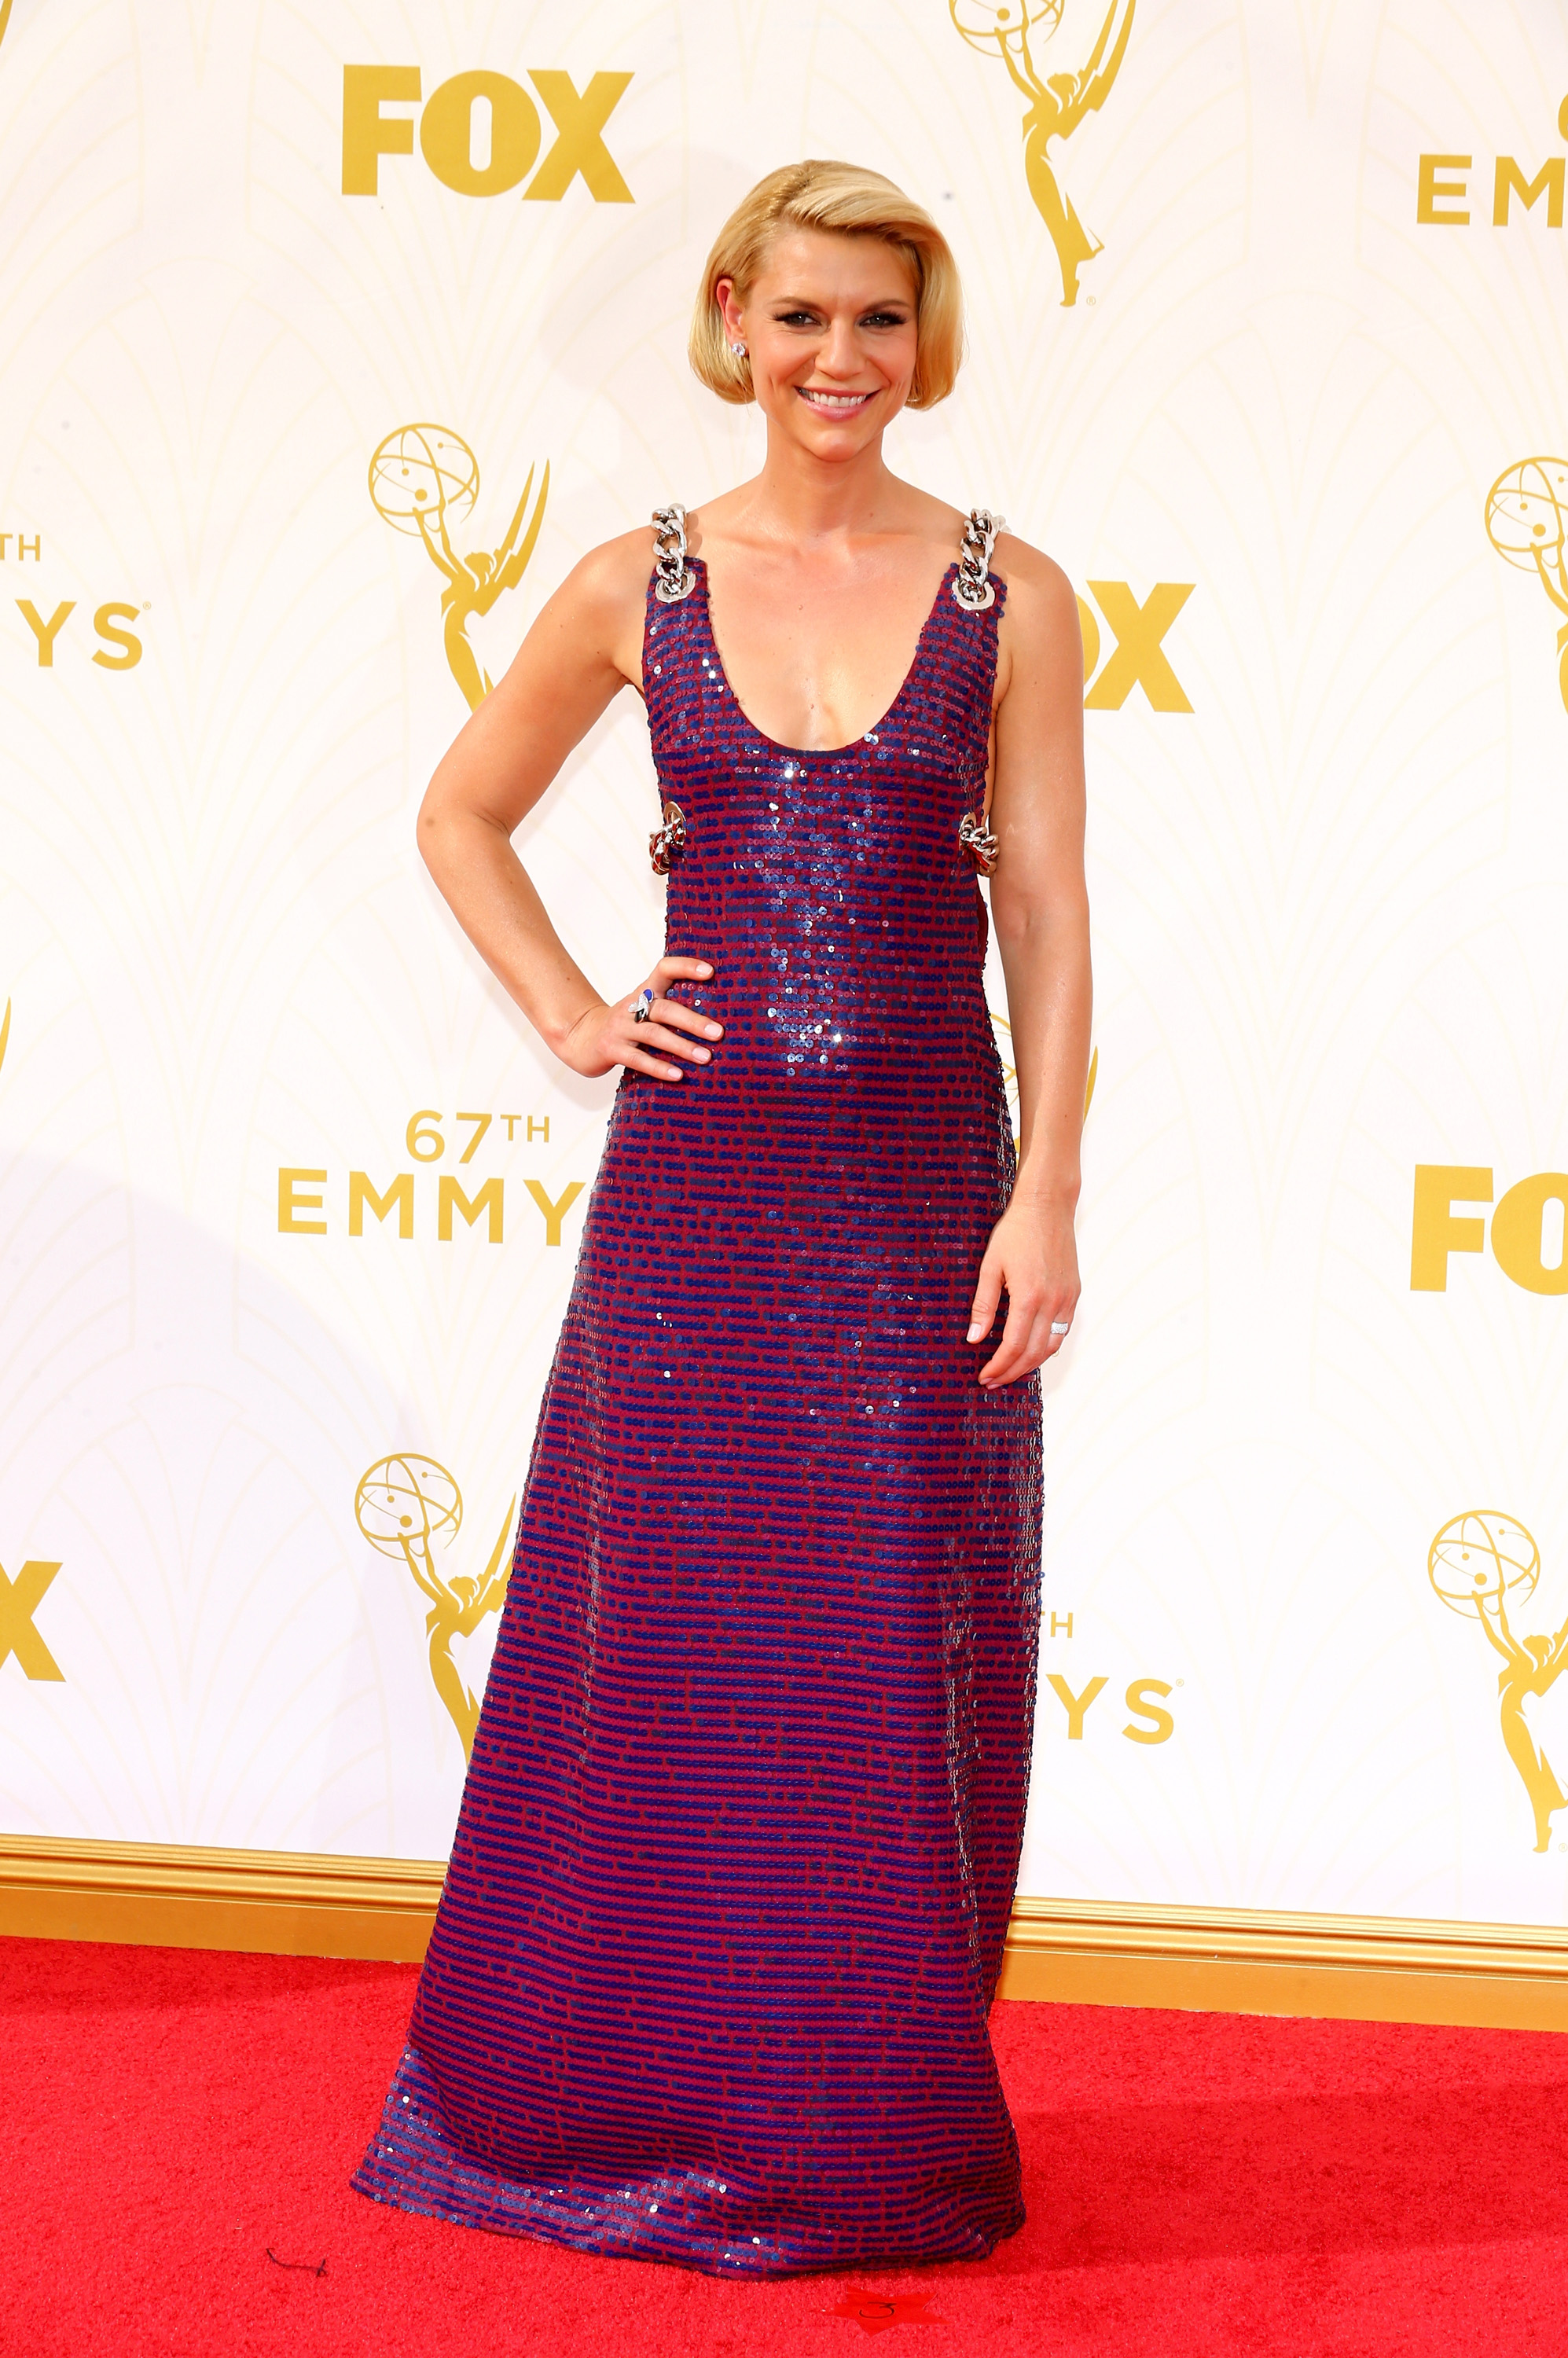 2015 Emmy Awards' 10 best red carpet looks [GALLERY]